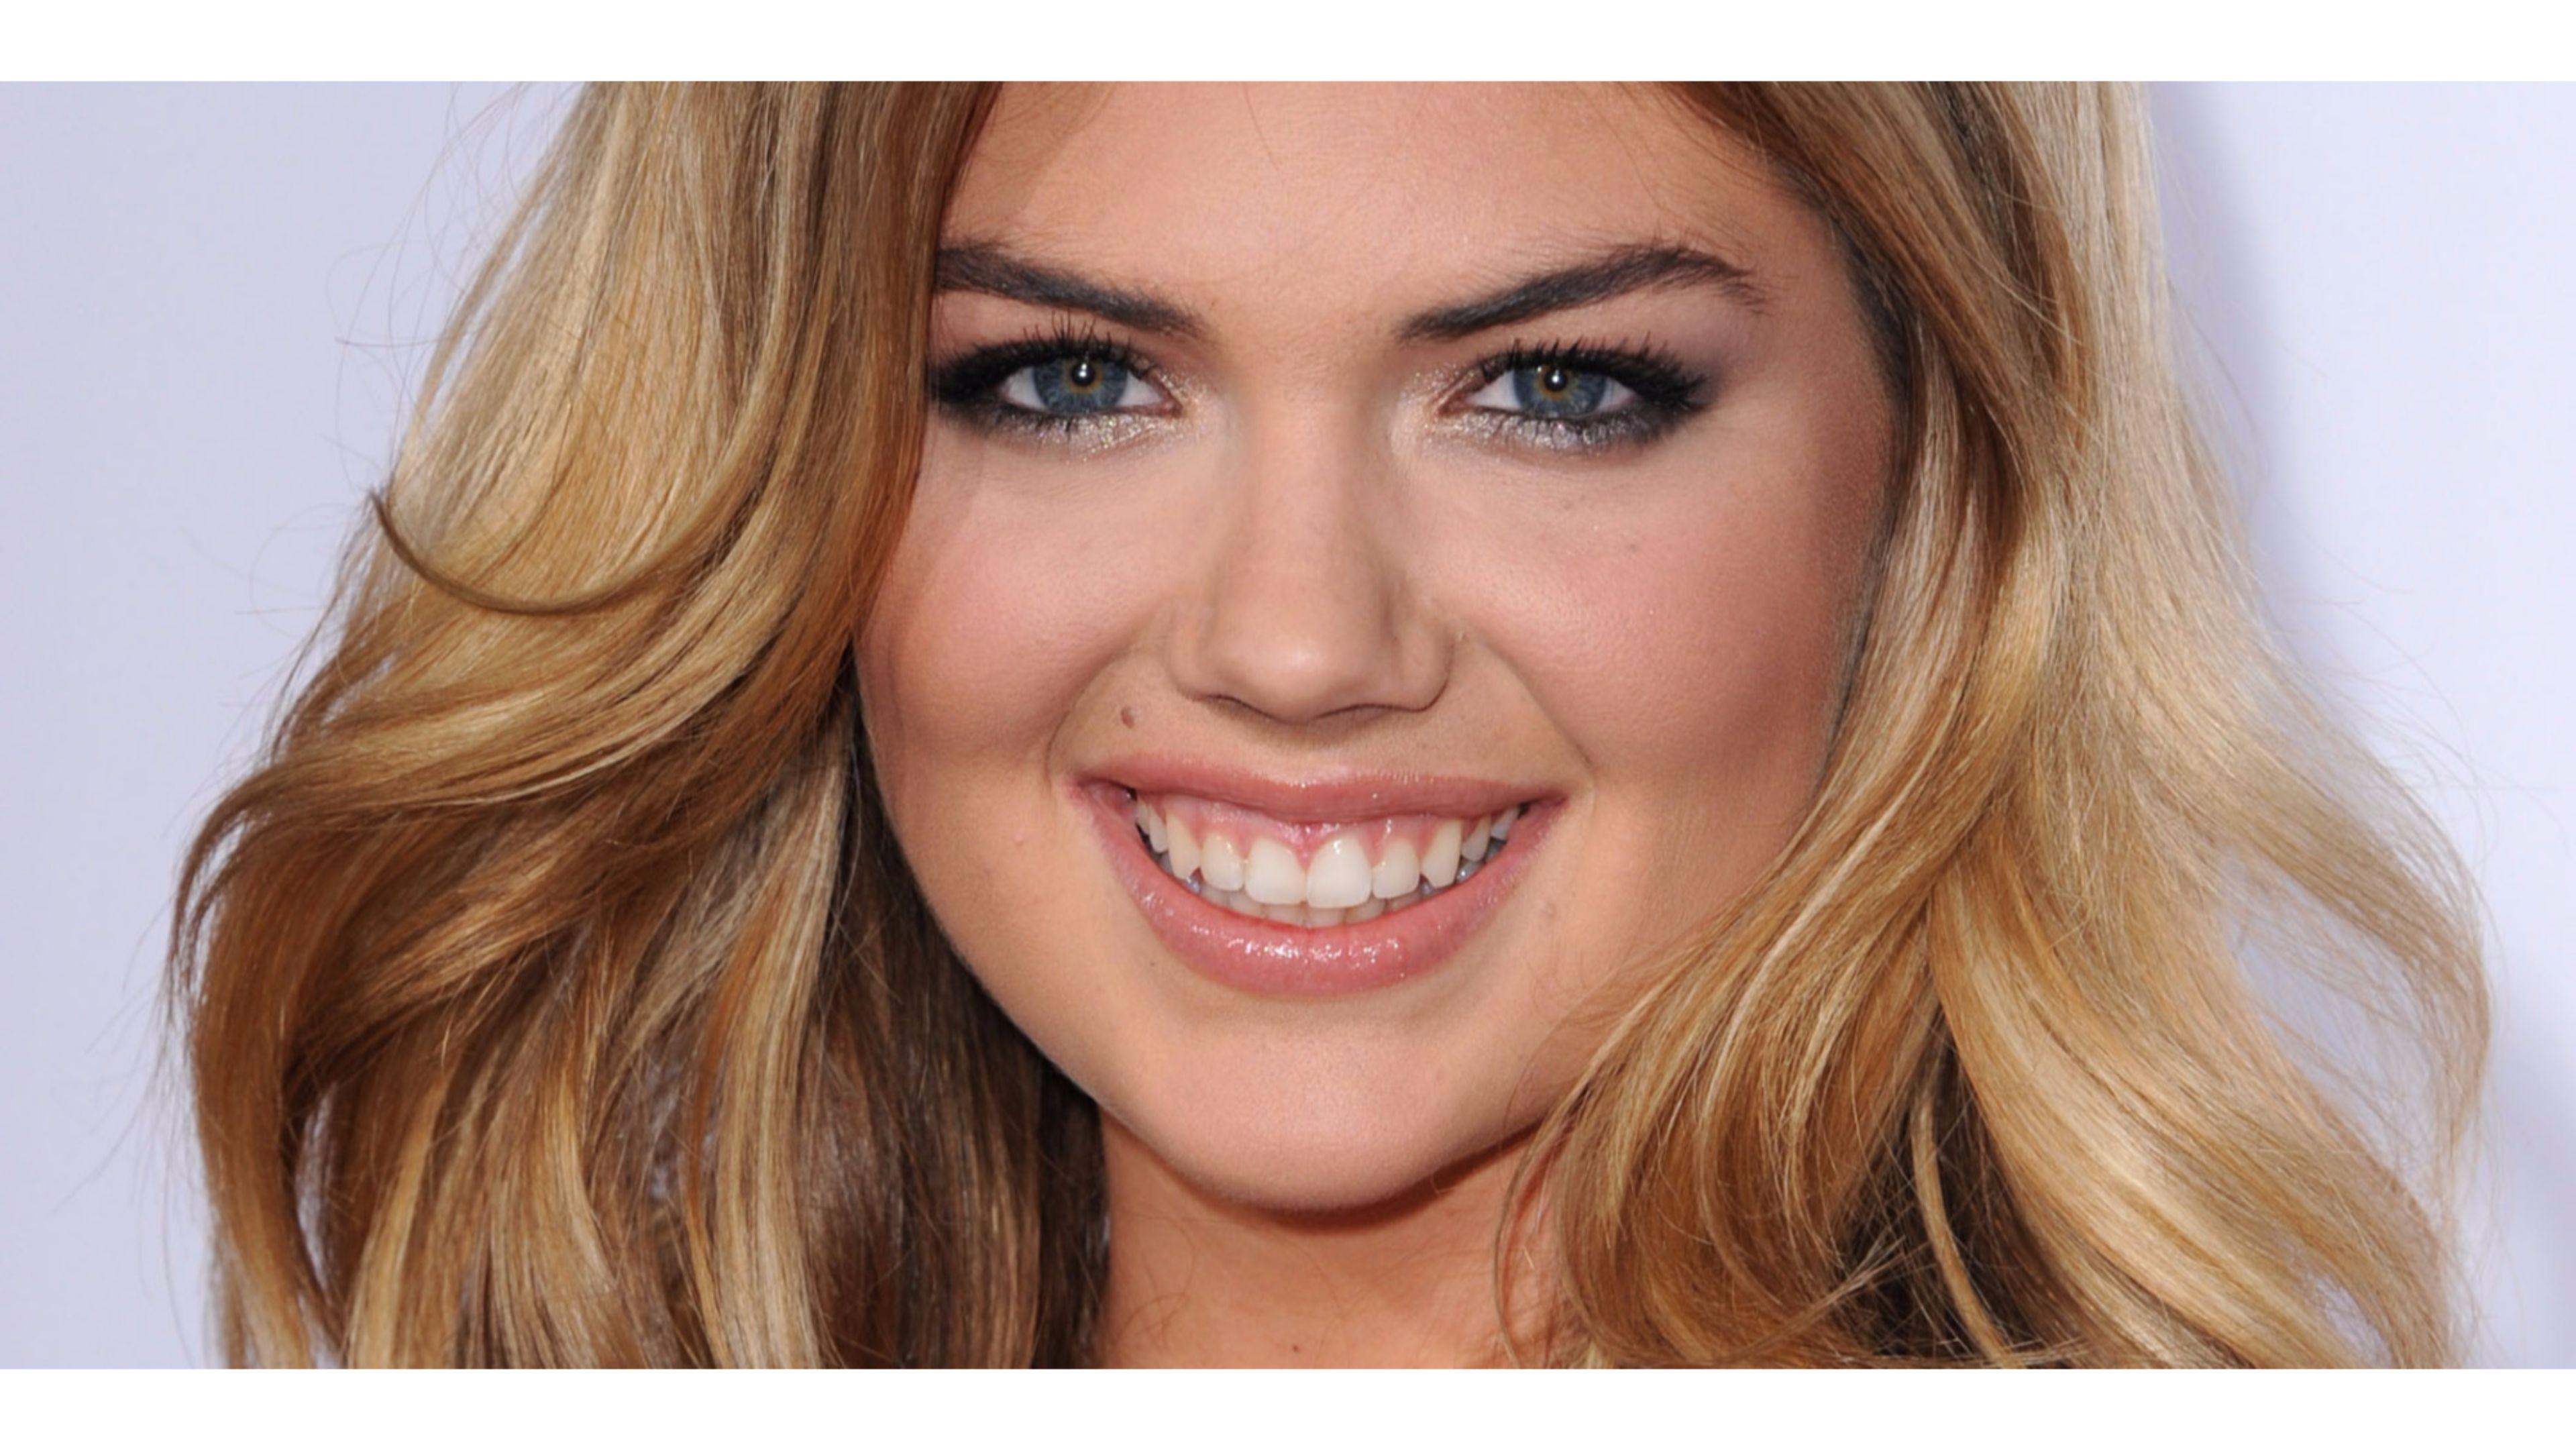 6m Followers 166 Following 1074 Posts See Instagram photos and videos from Kate Upton kateupton